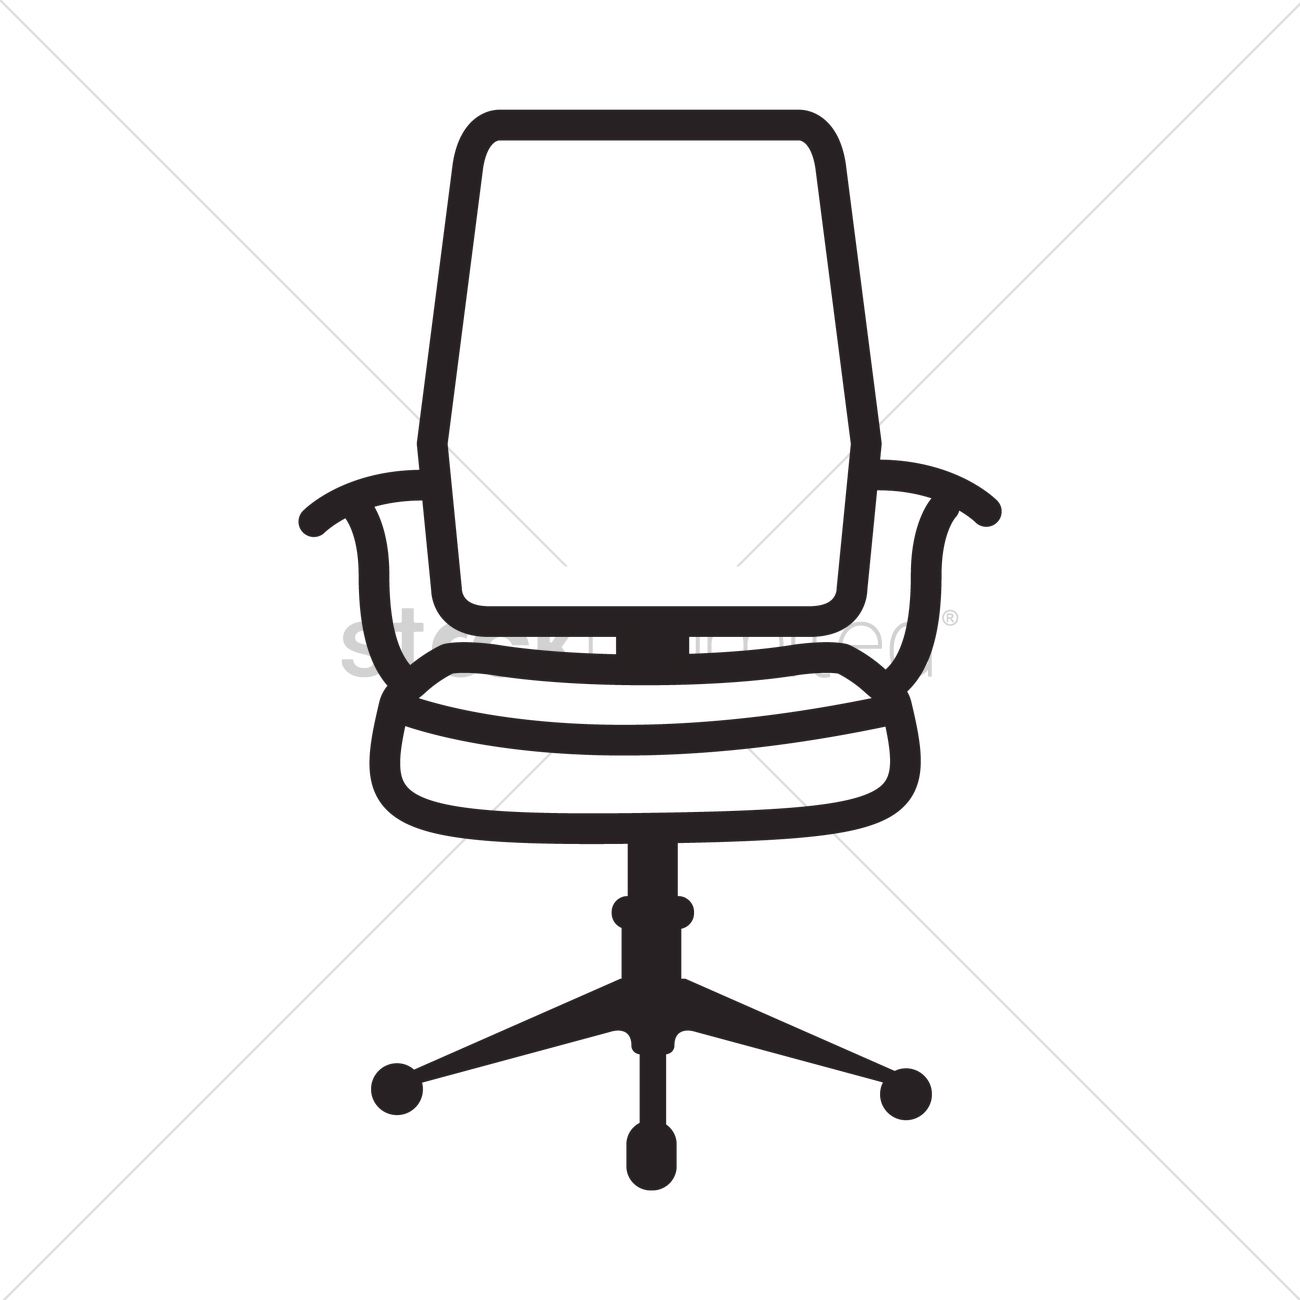 White And Black Office Chair Office Chair Icon Vector Image 1525499 Stockunlimited